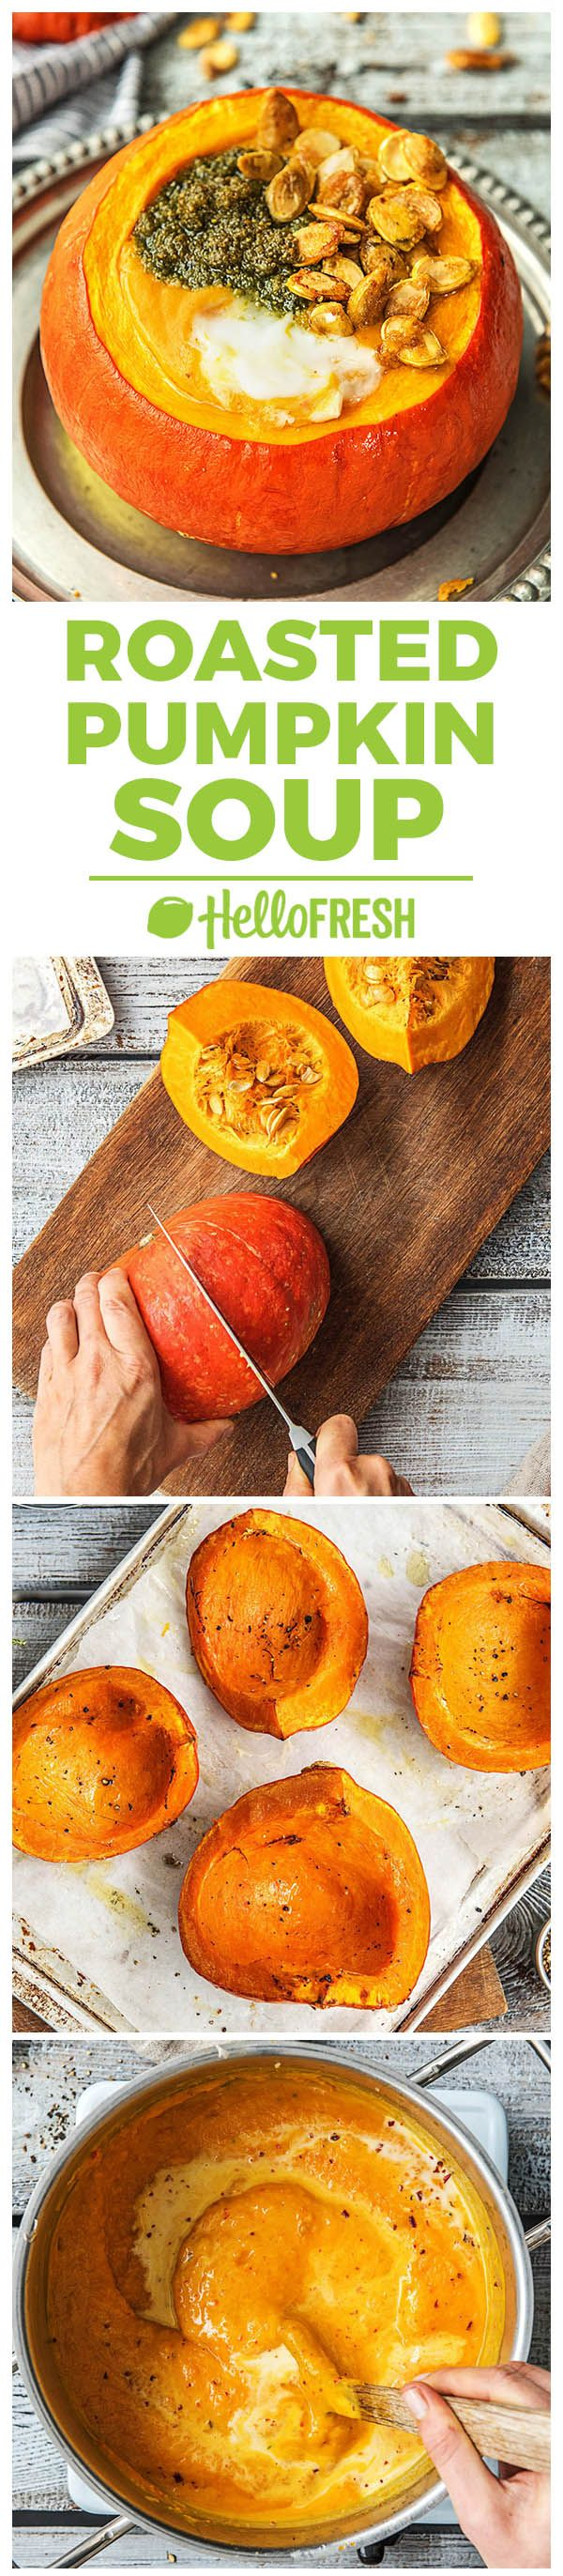 Roasted pumpkin soup recipe | More easy and healthy fall squash meals on blog.hellofresh.com